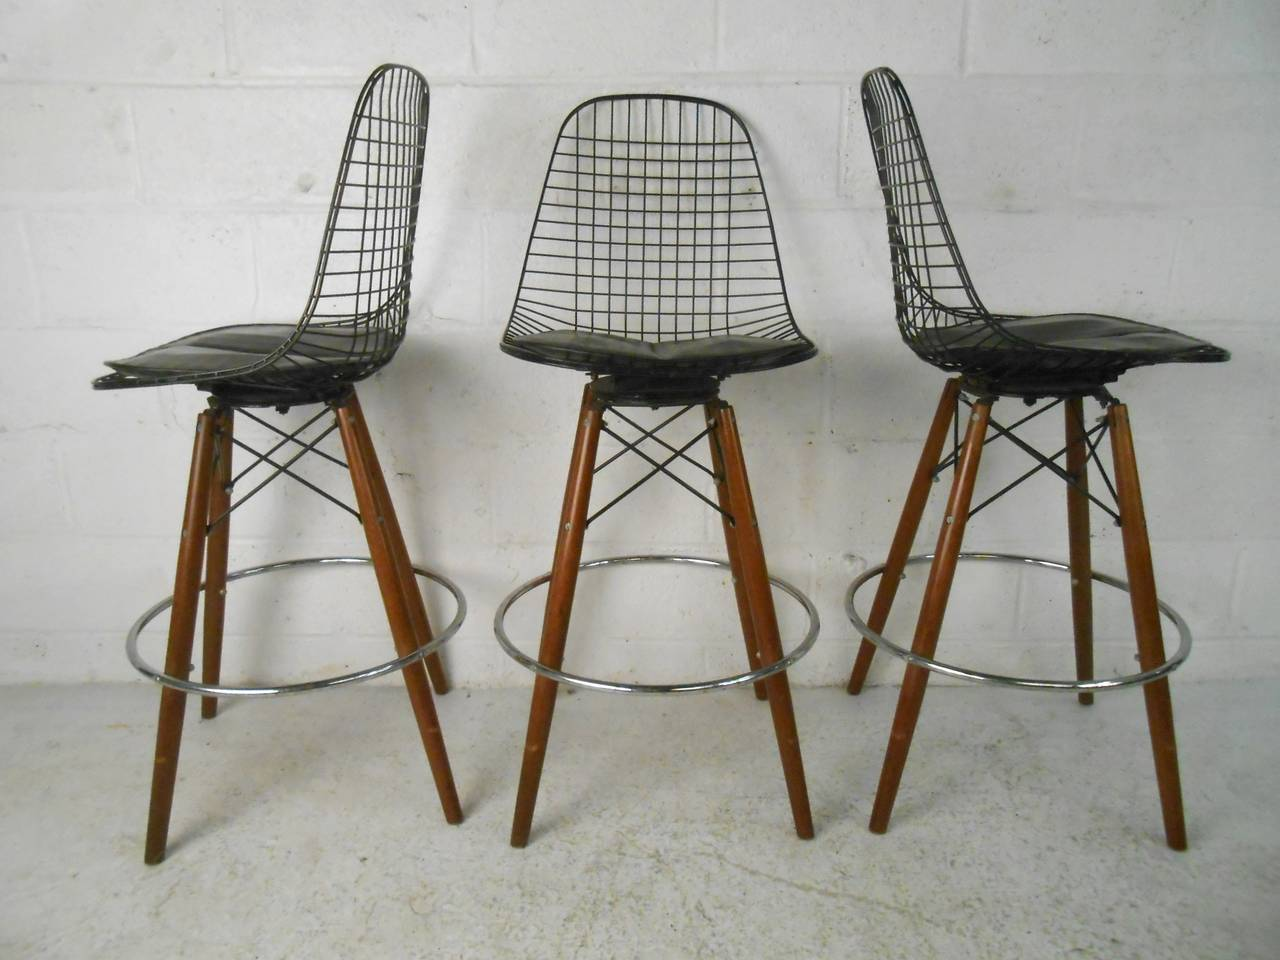 unknown set of four midcentury modern barstools in the style of harrybertoia for. set of four midcentury modern barstools in the style of harry